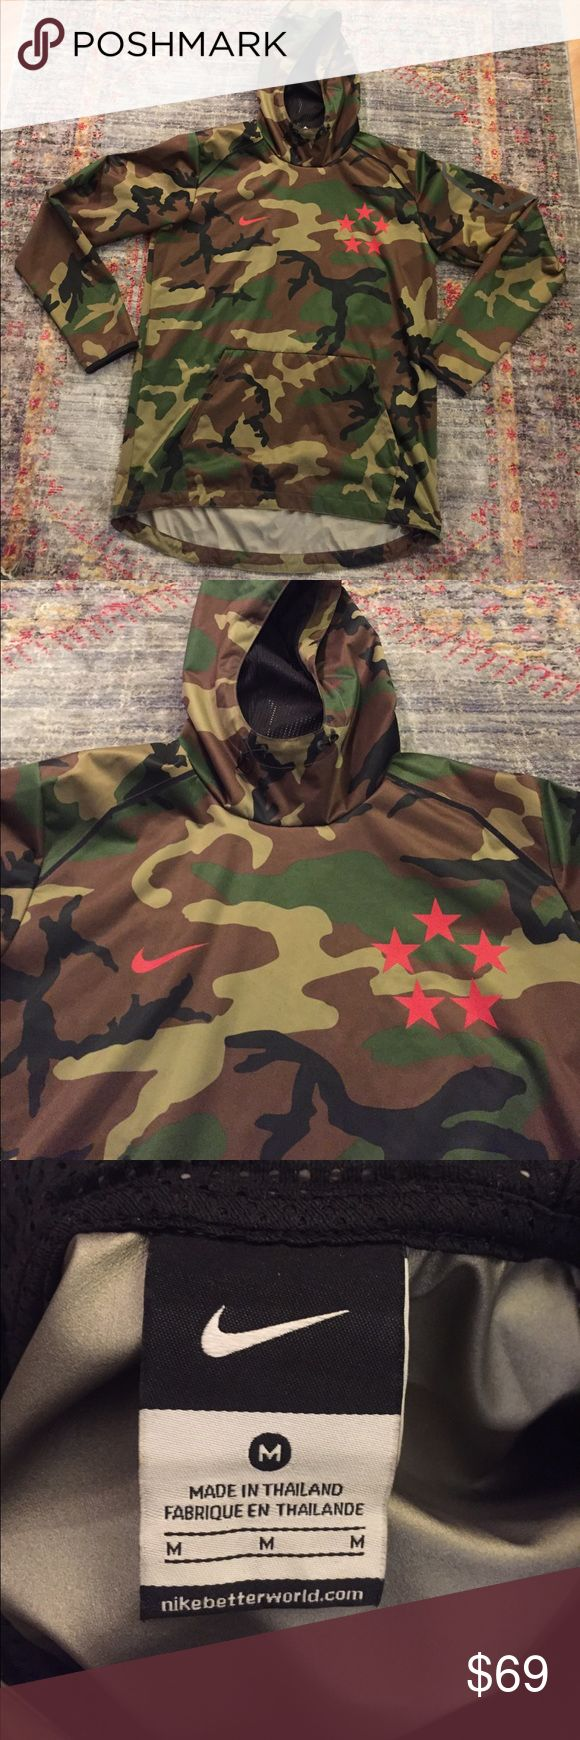 Nike waterproof cortex pullover jacket Mens nike camouflage waterproof/windproof pullover jacket. Never worn, excellent condition. Optional drawstring bottom, left shoulder pocket, mesh lined hoodie pocket. Deadstock. Nike Jackets & Coats Raincoats